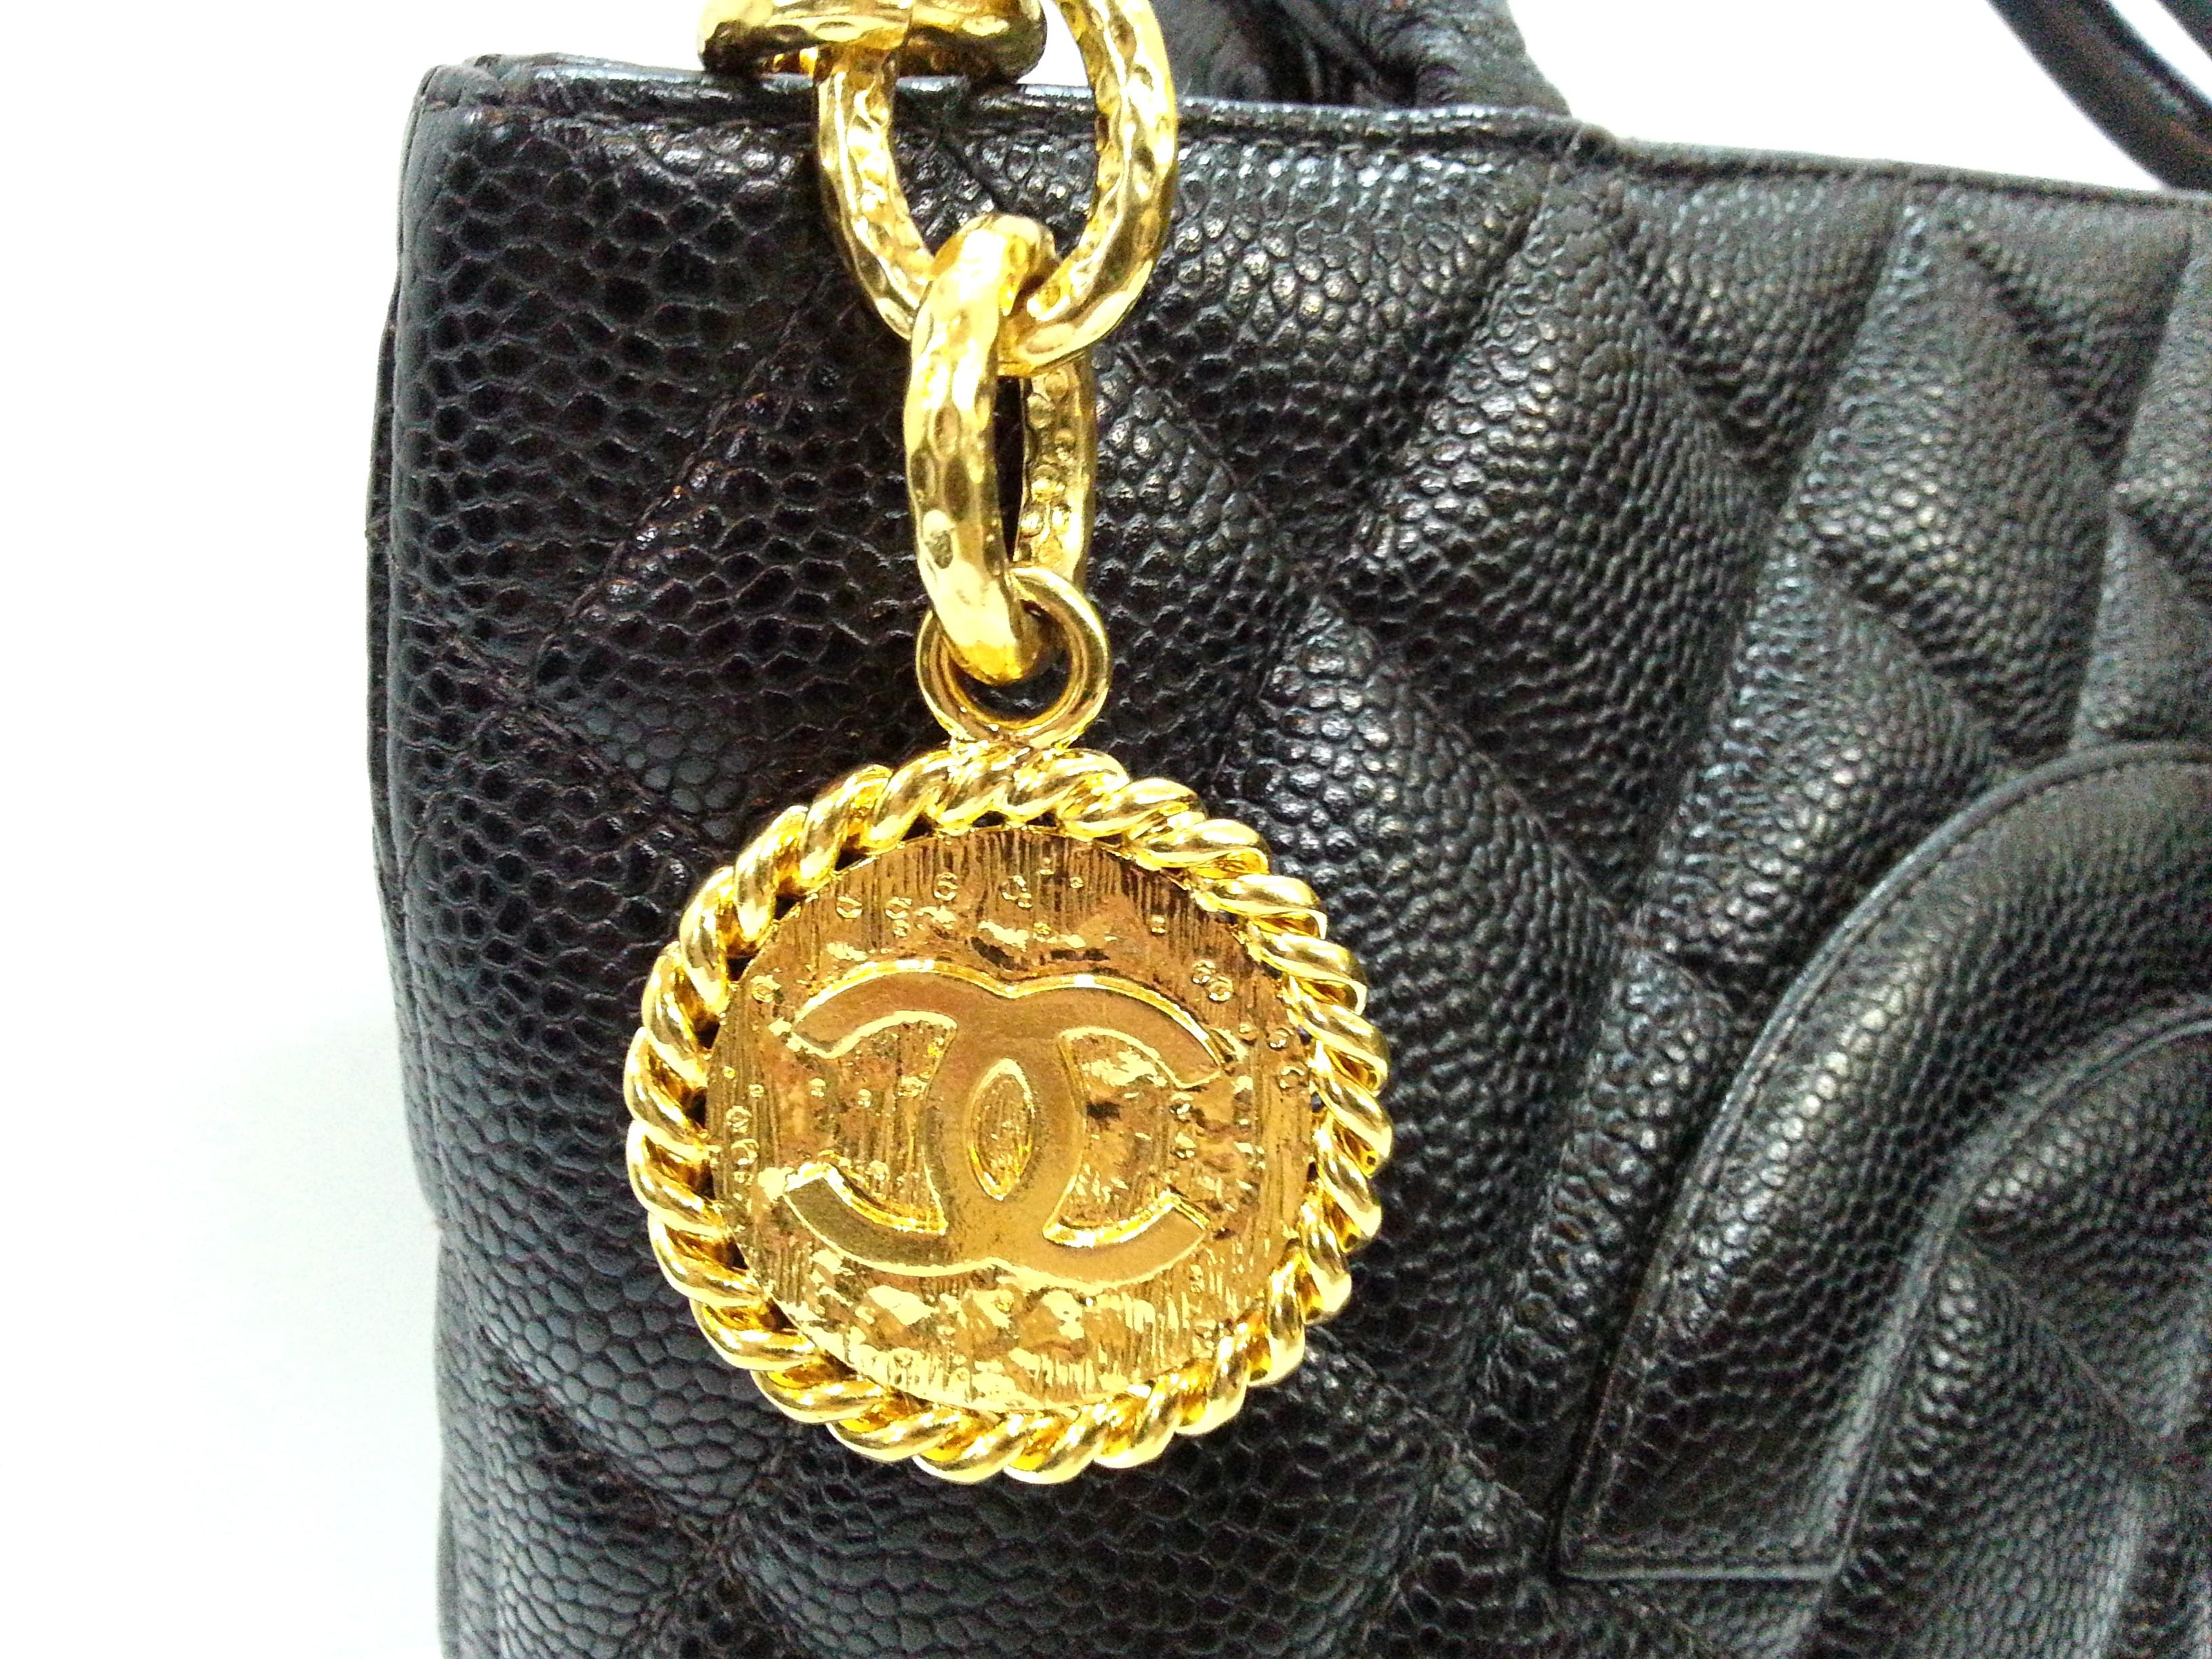 Authentic Chanel Vintage Medallion Caviar Shoulder Bag With 24K Plated Gold Hardware {{Only For Sale}} ** No Trade ** {{Fixed Price}} ** 定价 **